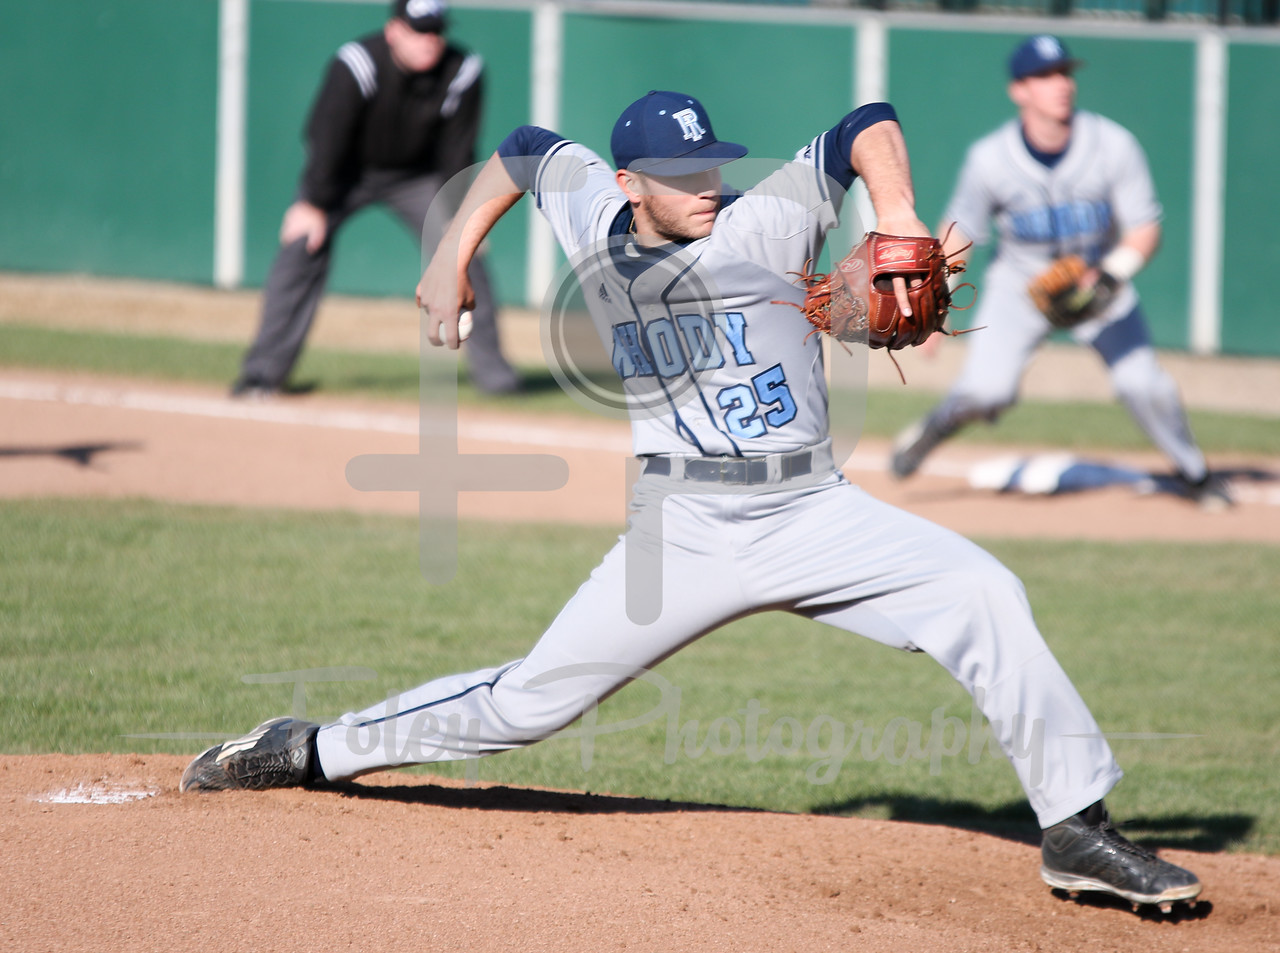 Worcester, MA: Holy Cross defeated Rhode Island 5-3 in nonconference action on April 13th.